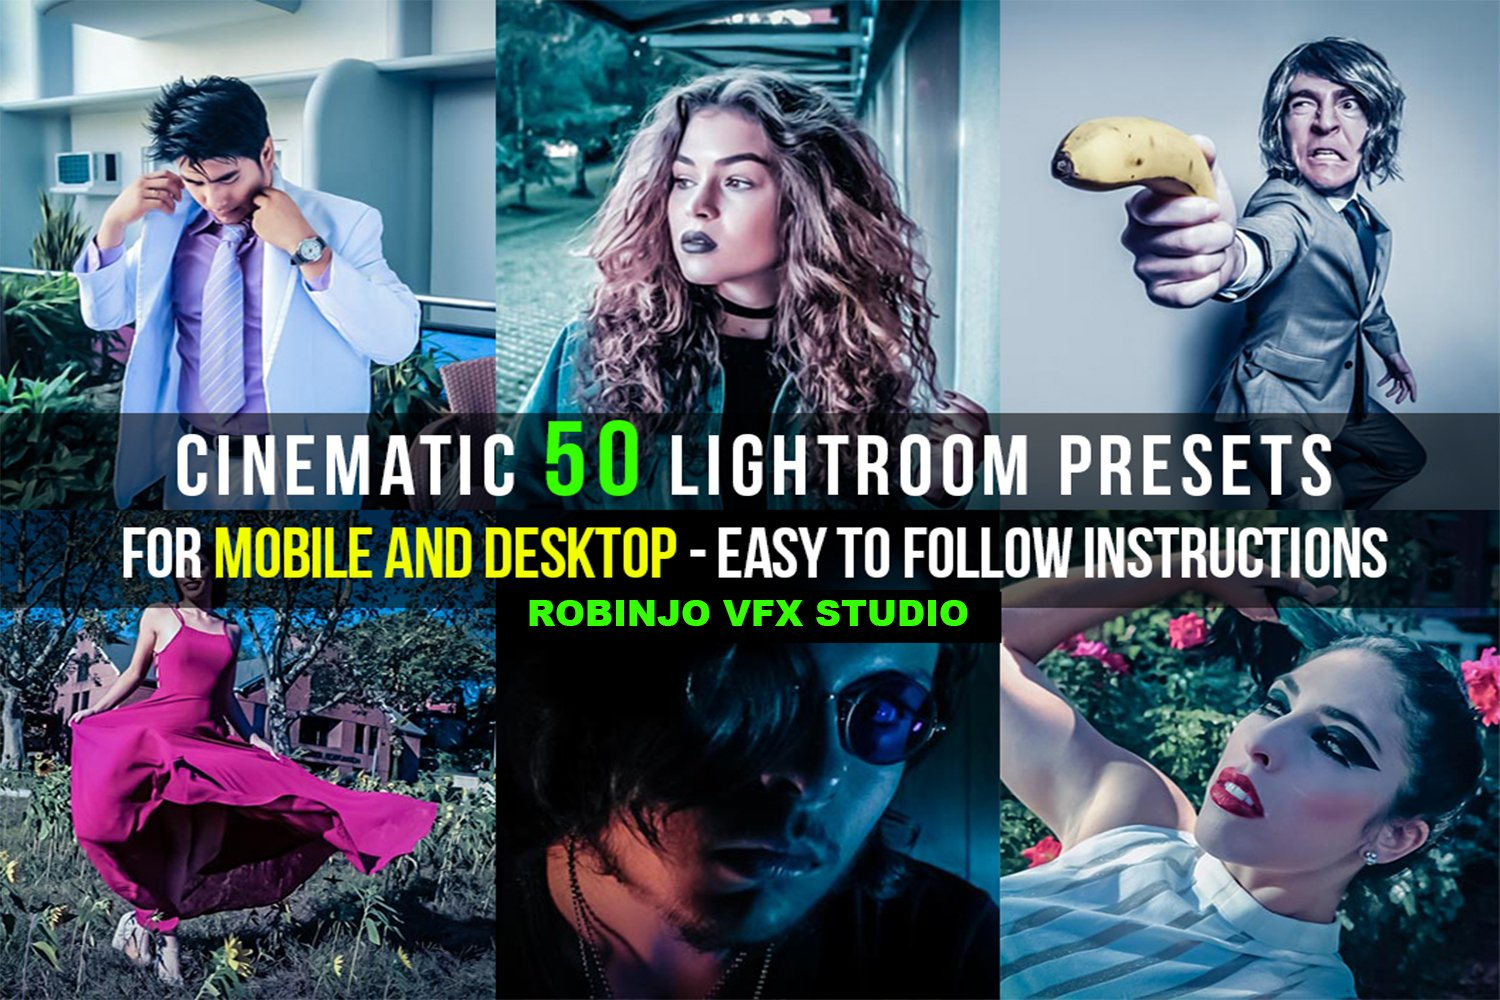 Cinematic 50 Lightroom Presets example image 1